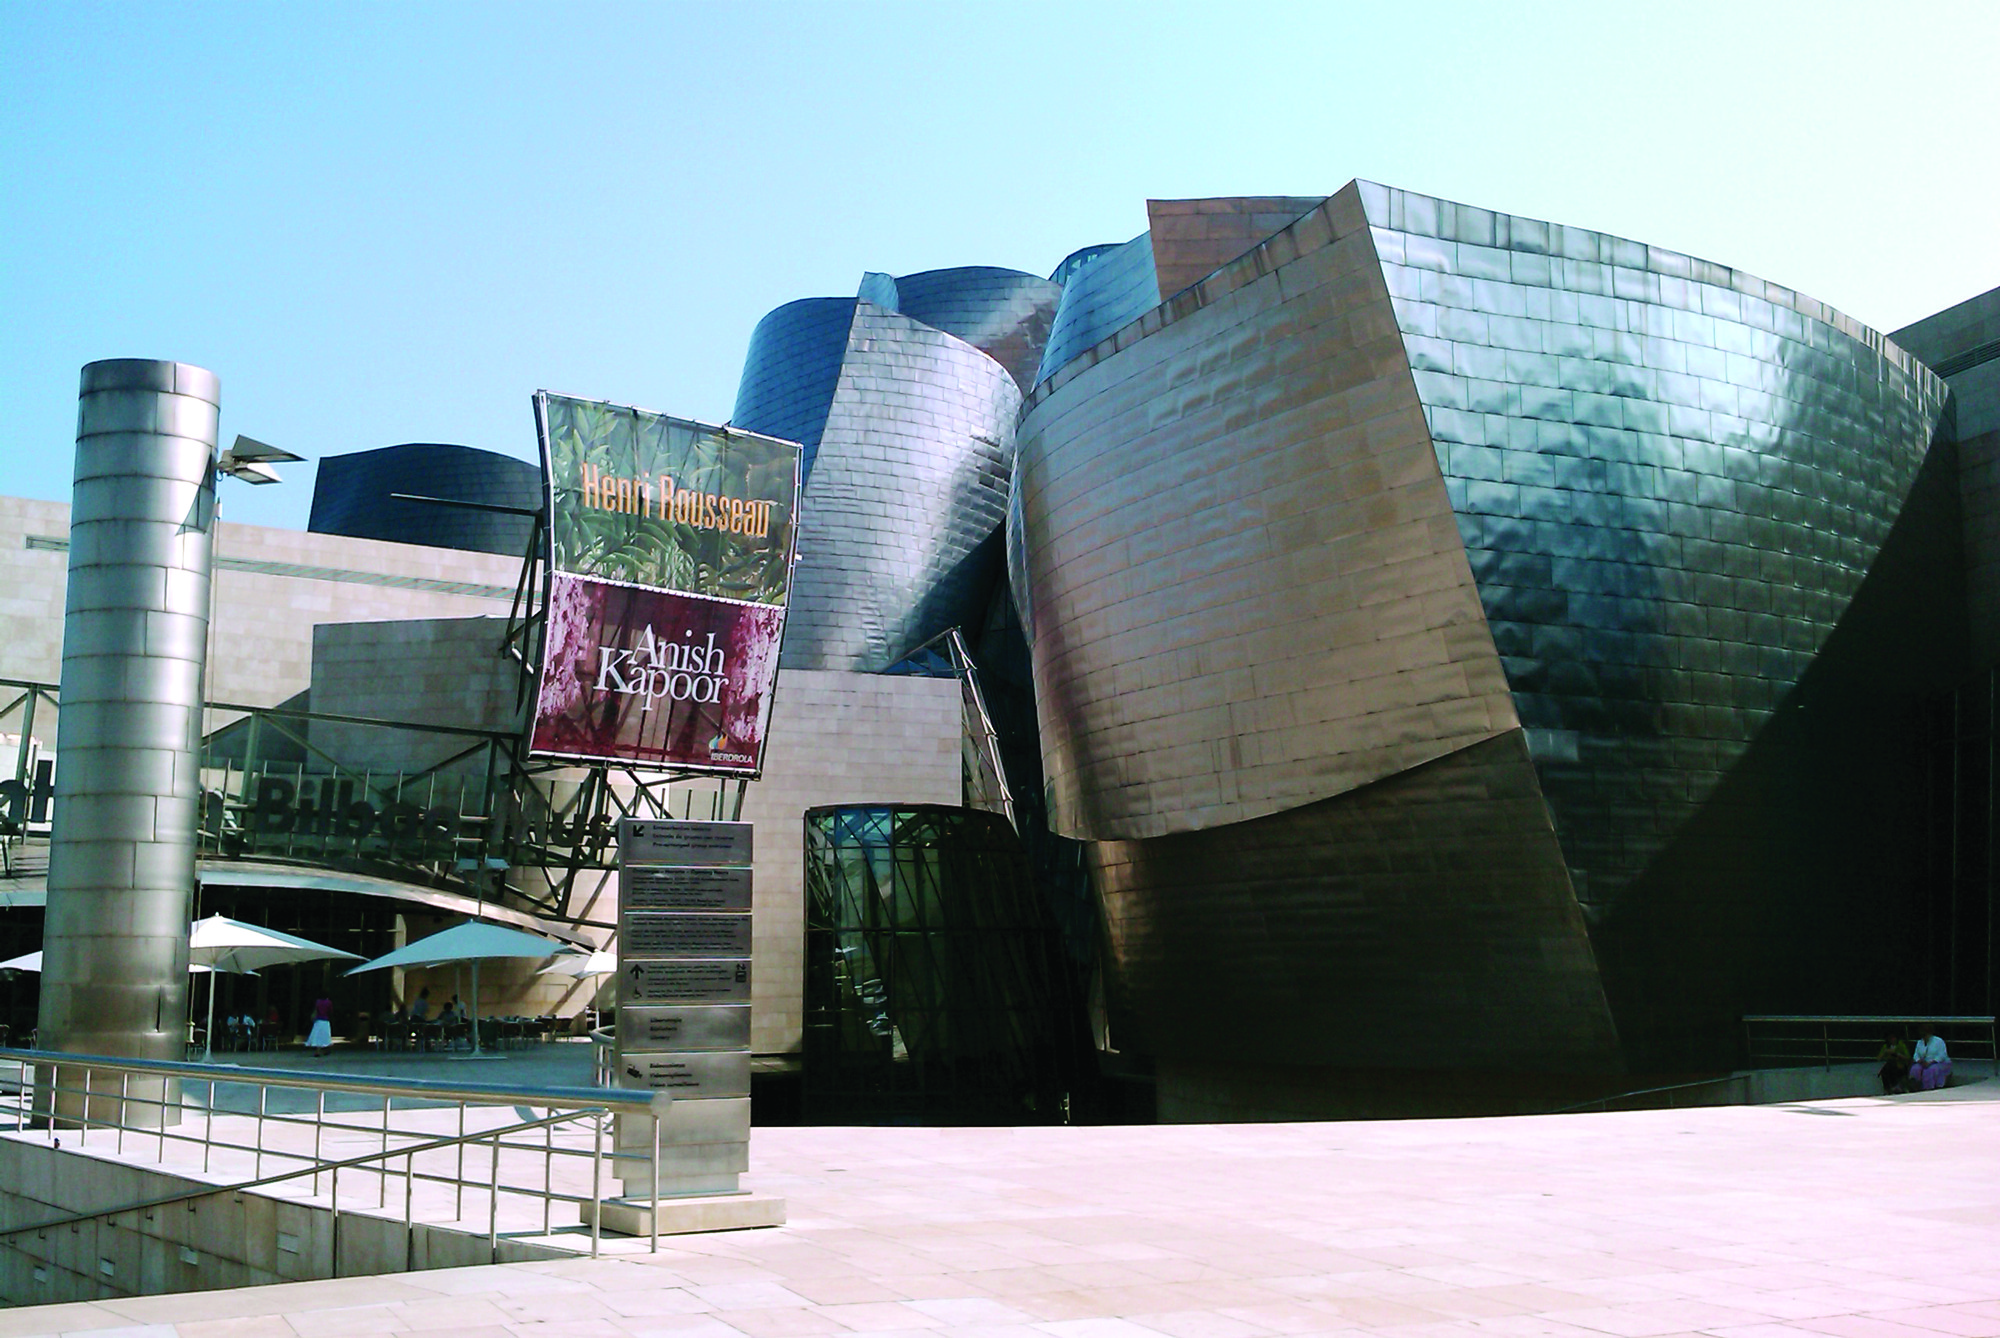 Architecture 101 Lecture Series, Bilbao / © Flickr user EEPaul. Used under <a href='https://creativecommons.org/licenses/by-sa/2.0/'>Creative Commons</a>